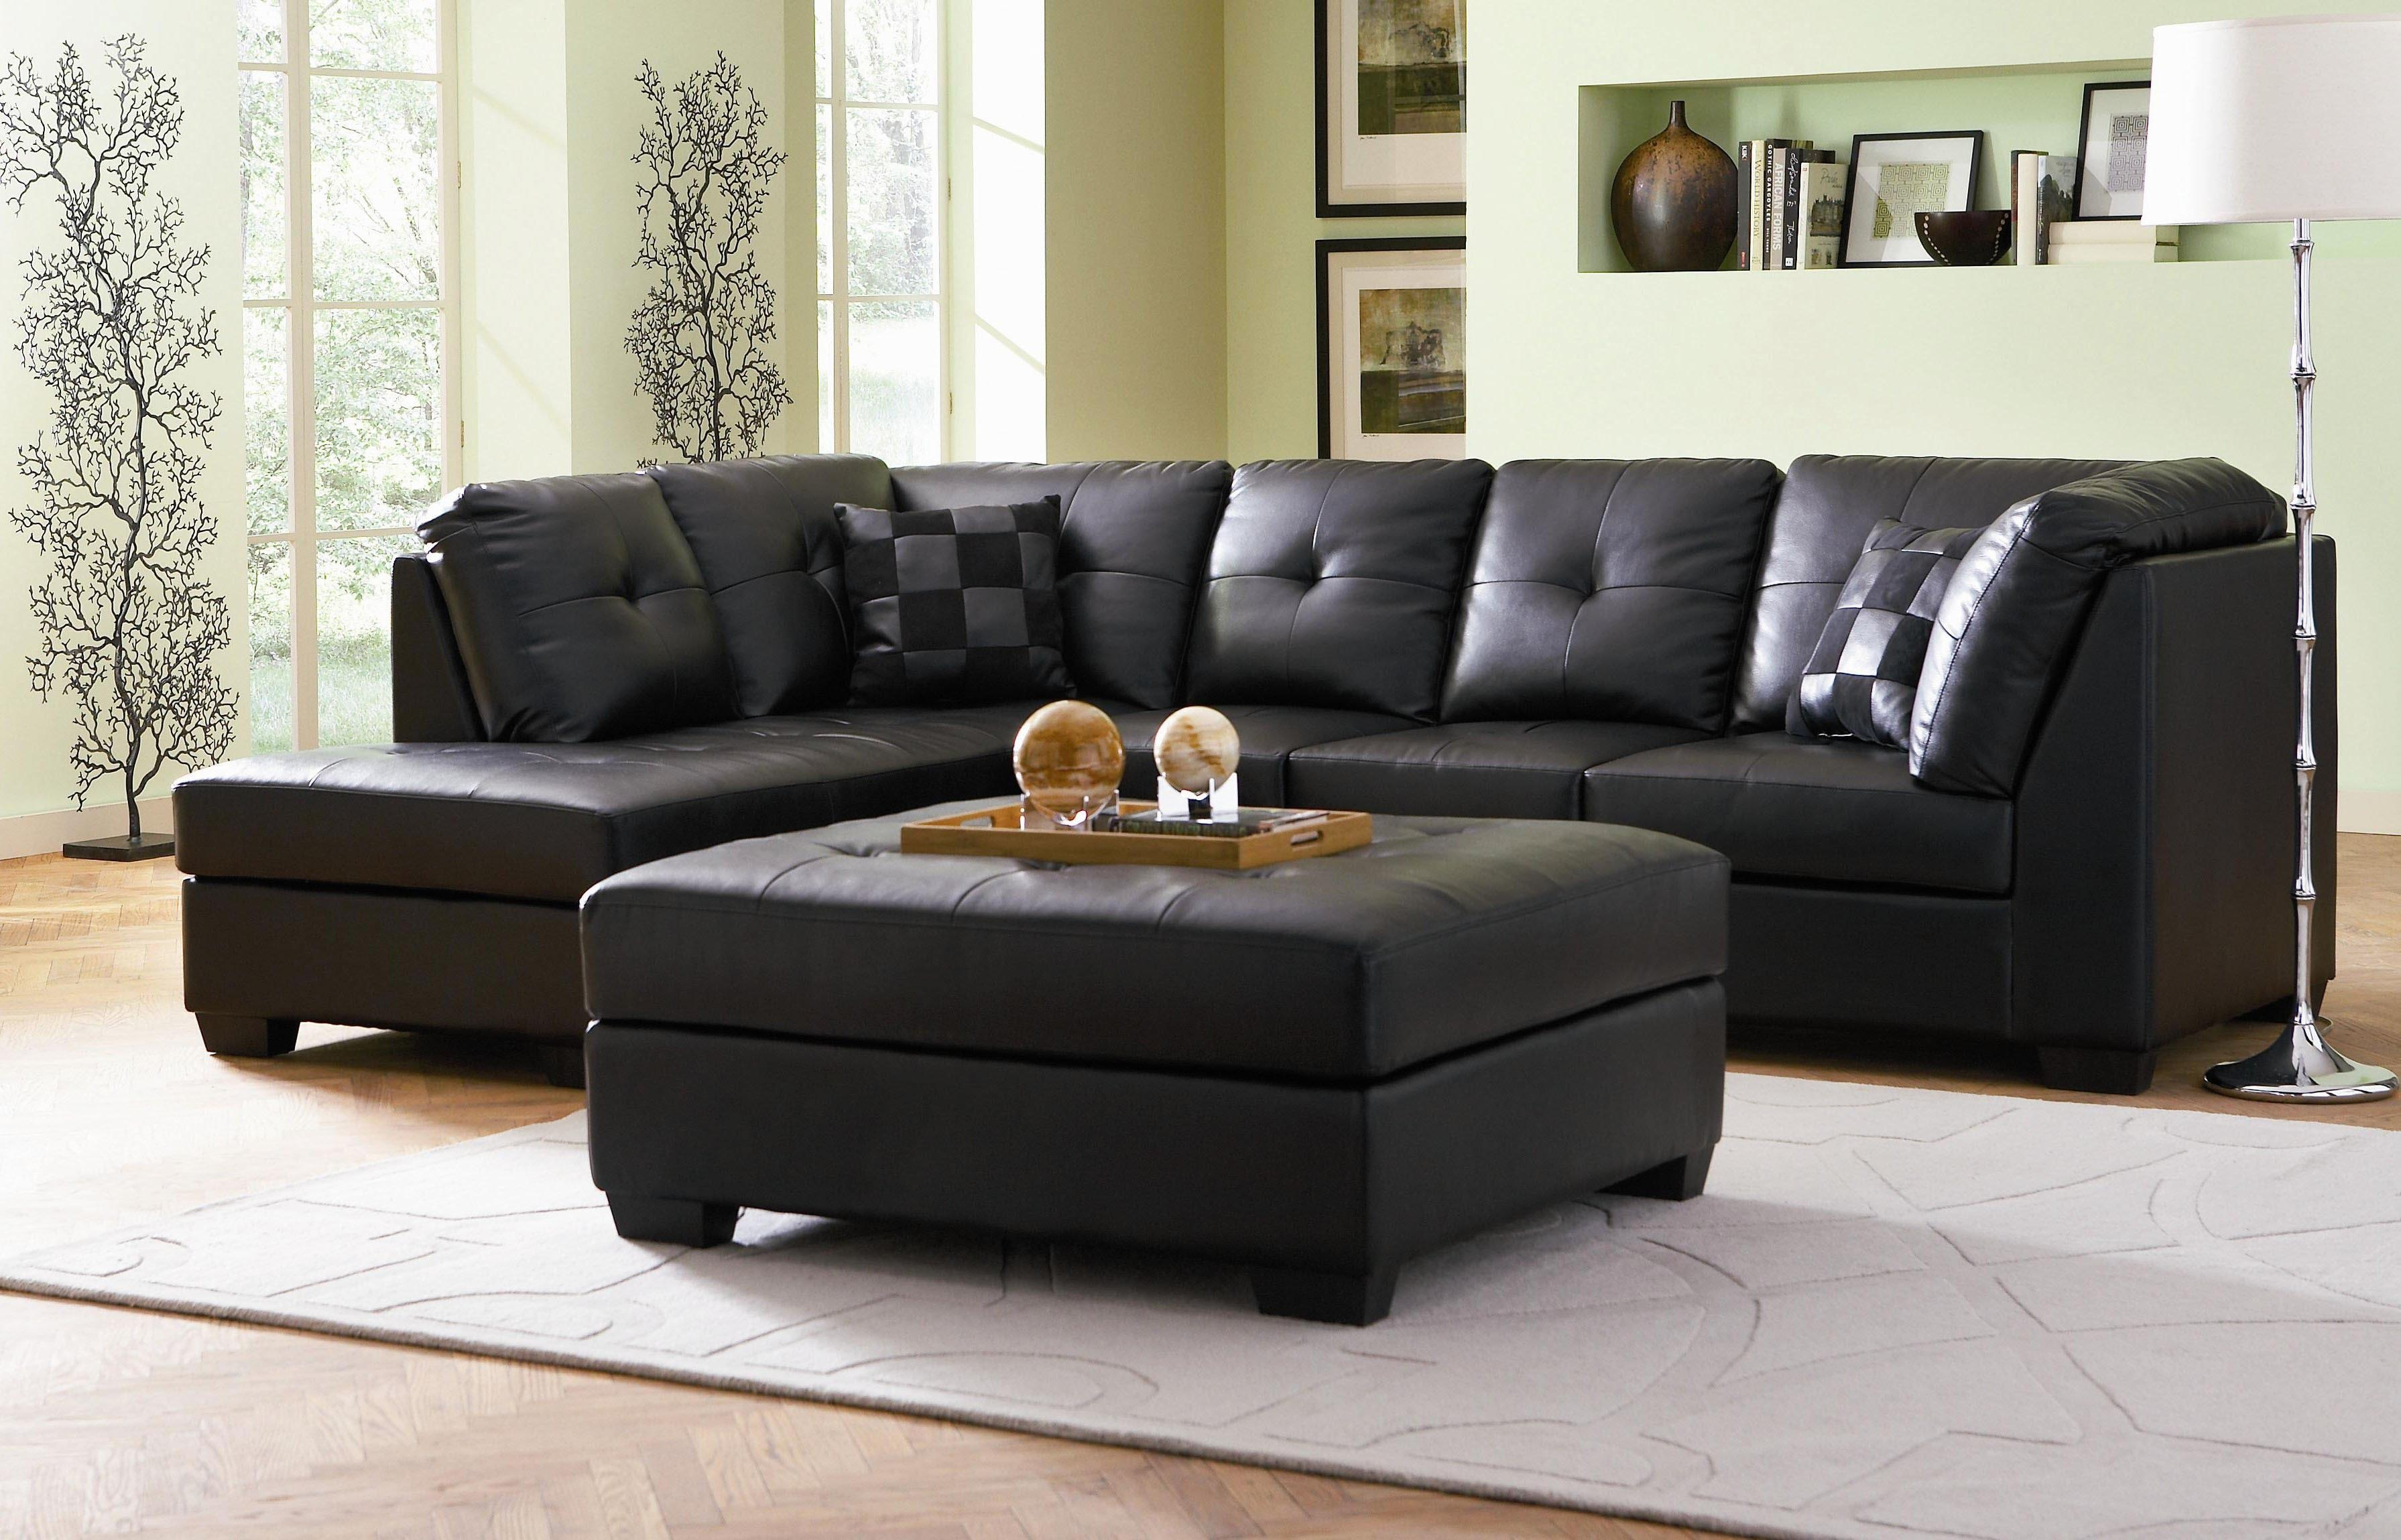 Sectional Sofa For Sale Cheap - Hotelsbacau throughout Giant Sofas